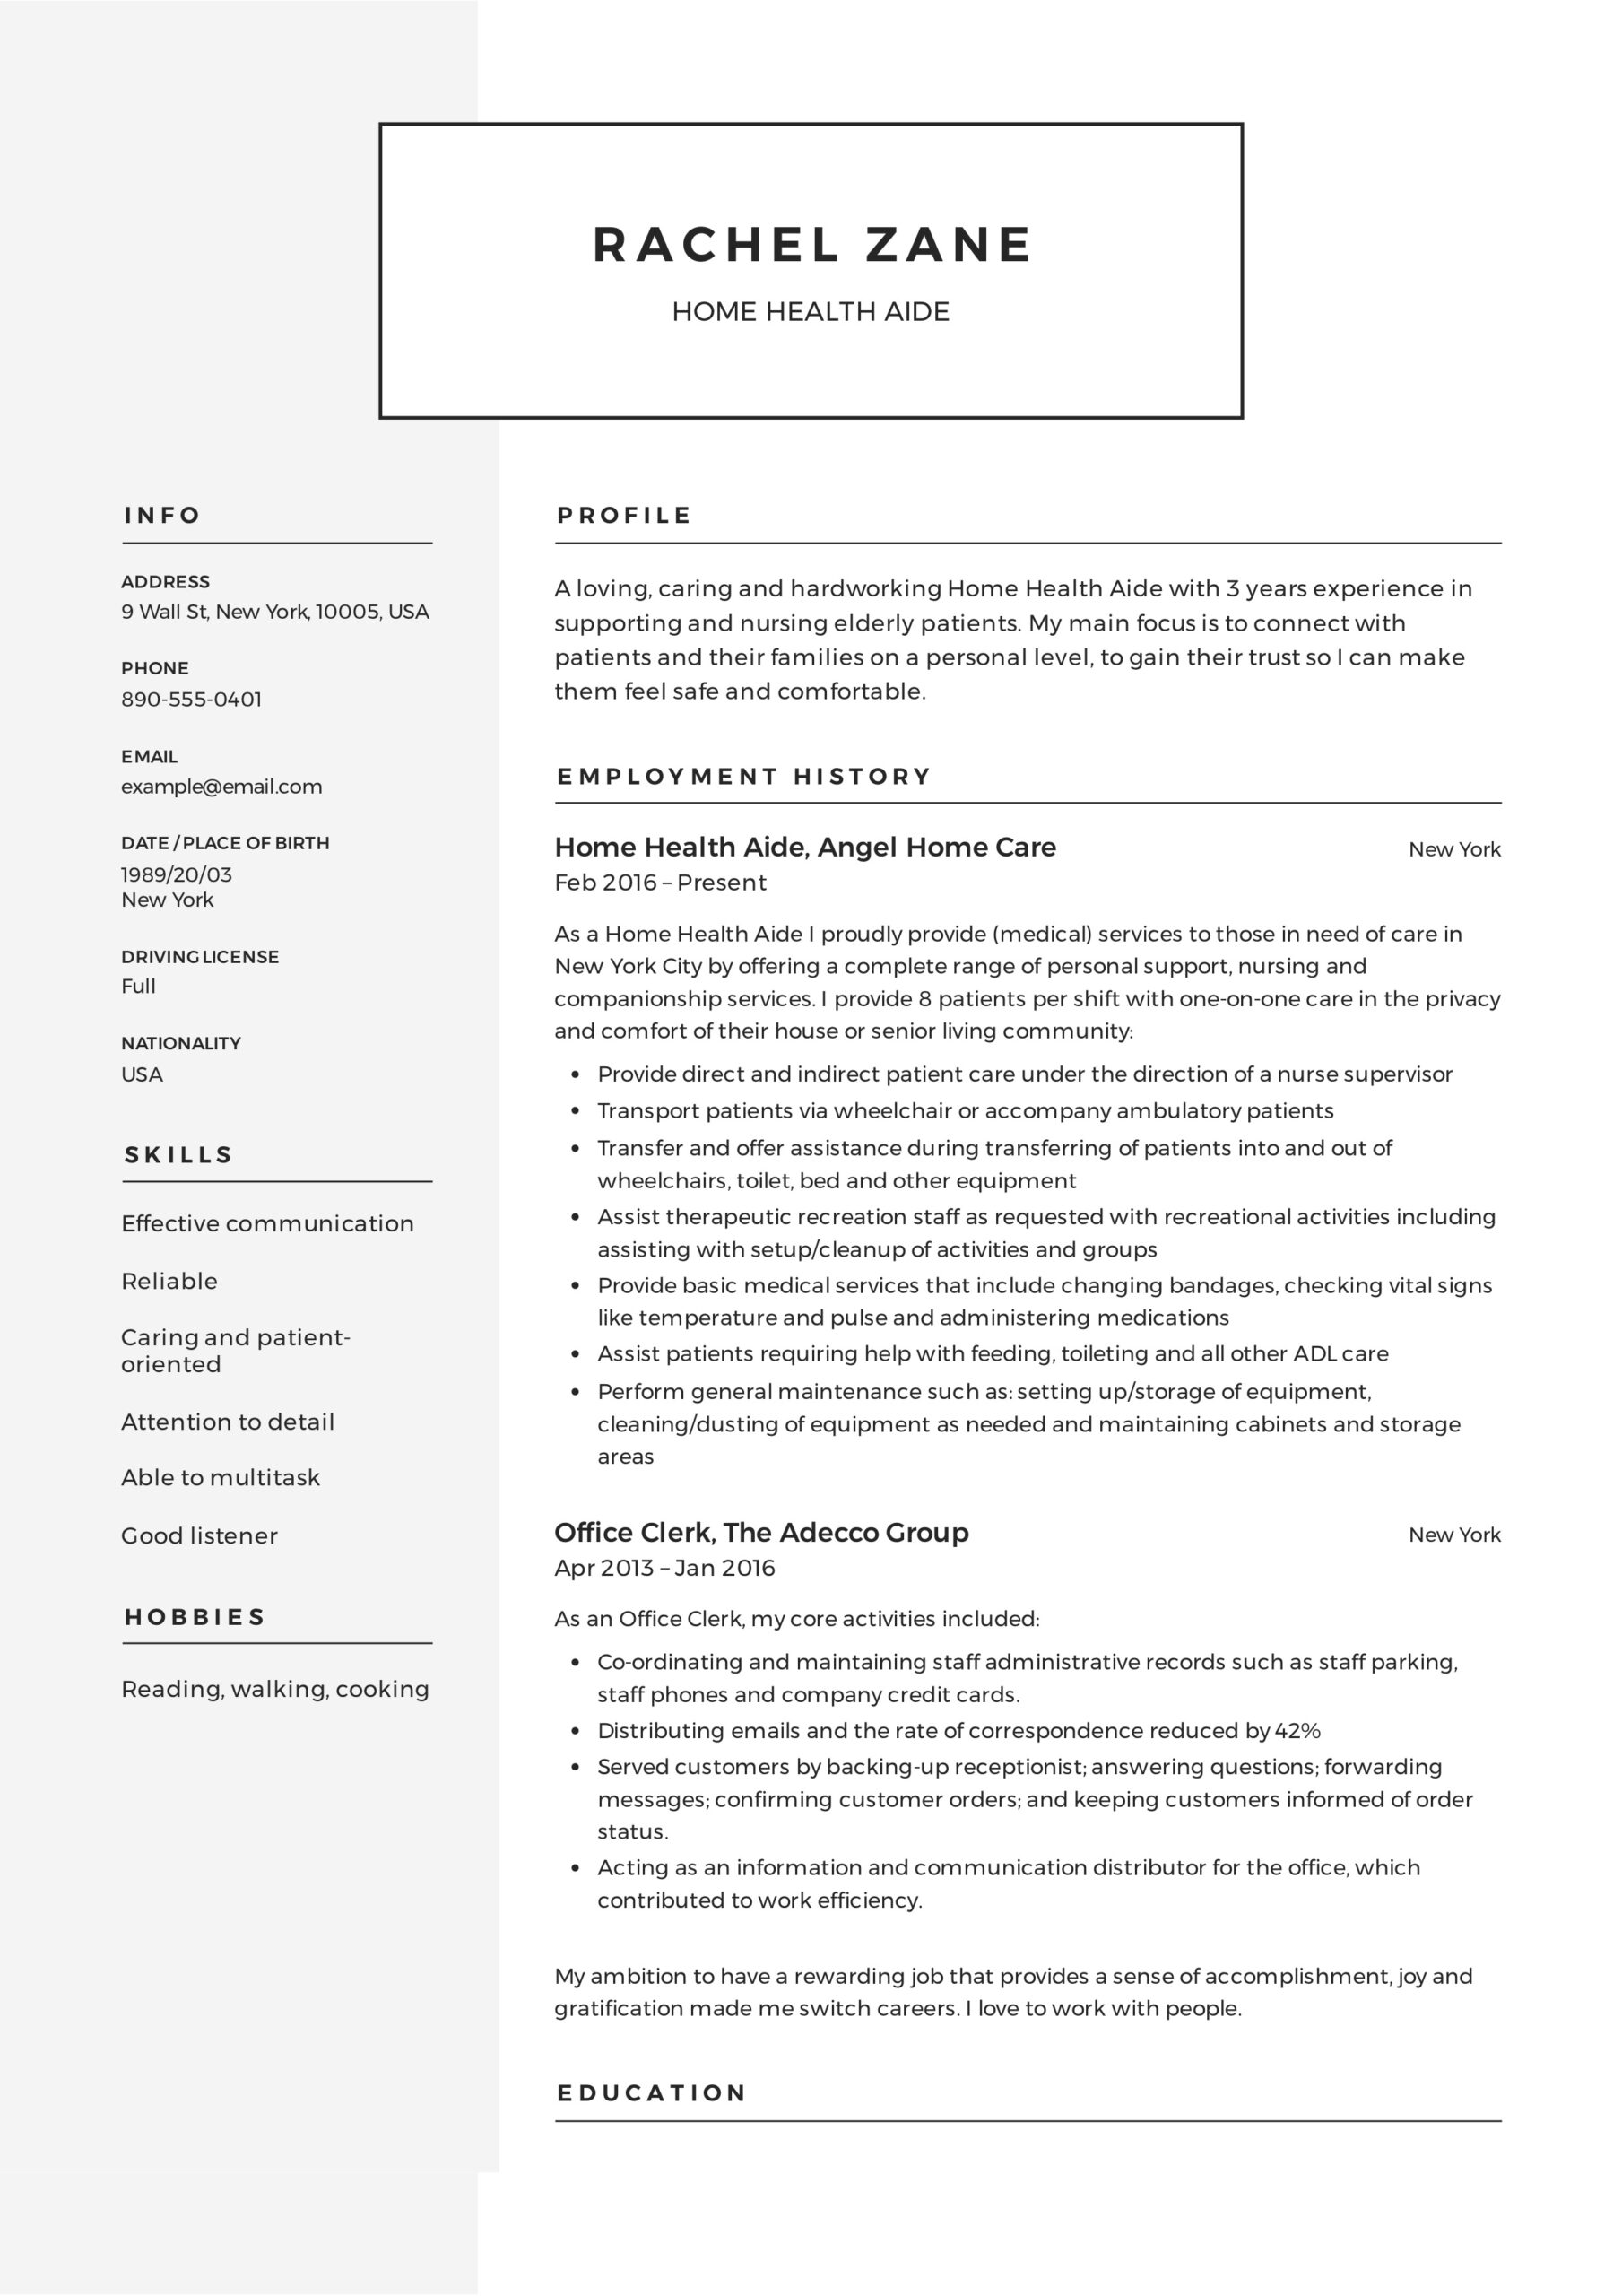 home health aide resume sample writing guide samples pdf healt creating an effective with Resume Home Health Aide Resume